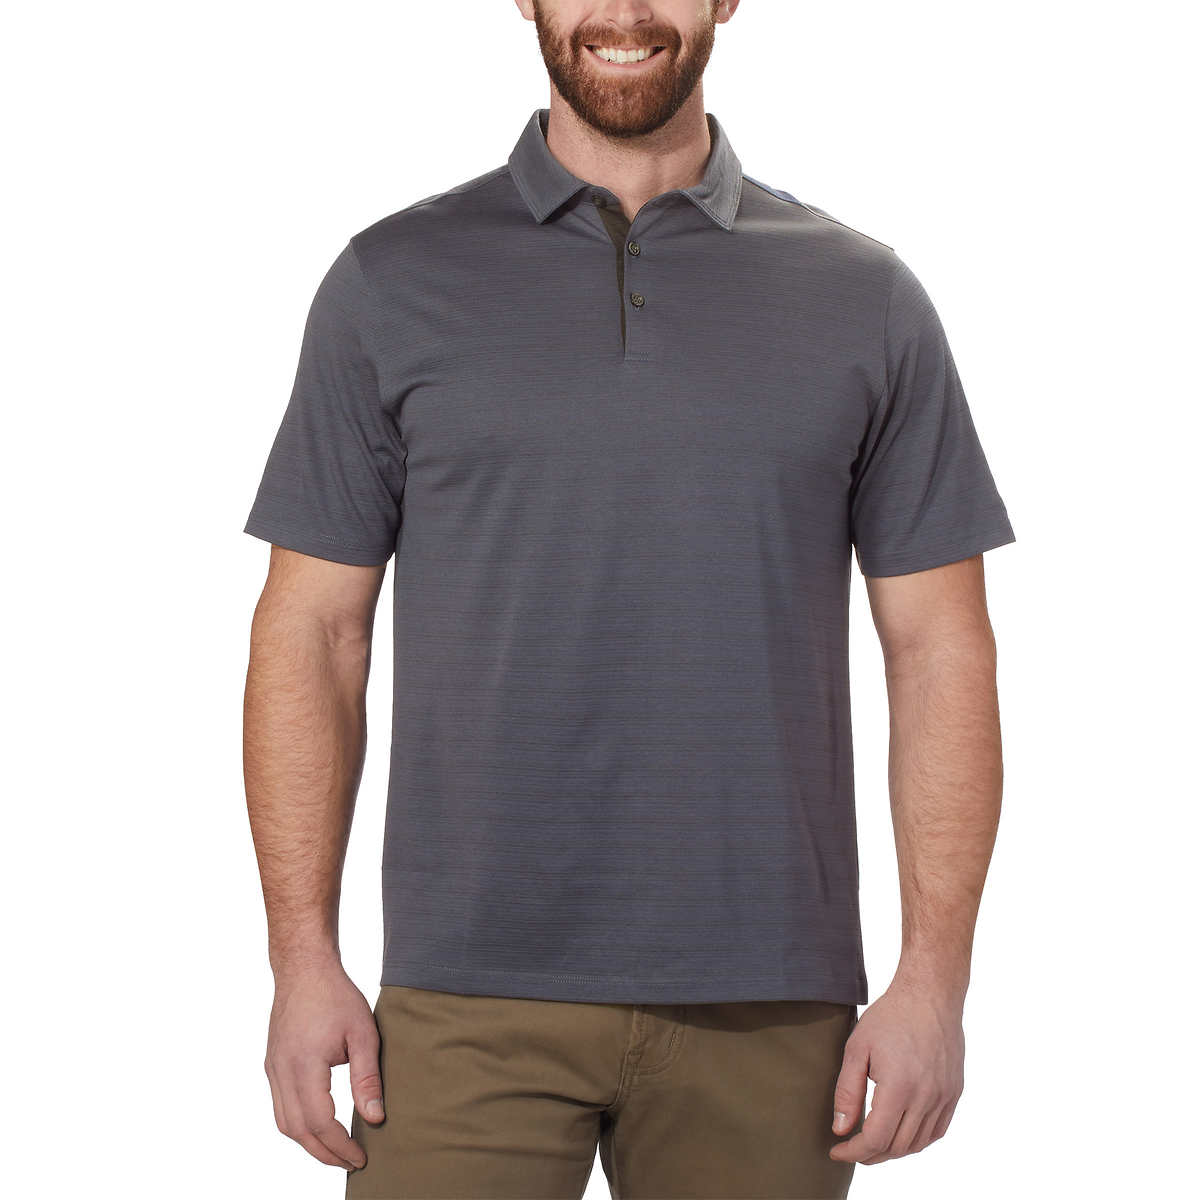 Kirkland Signature Men's Cotton Poly Polo Shirt (Grey, XX-Large)